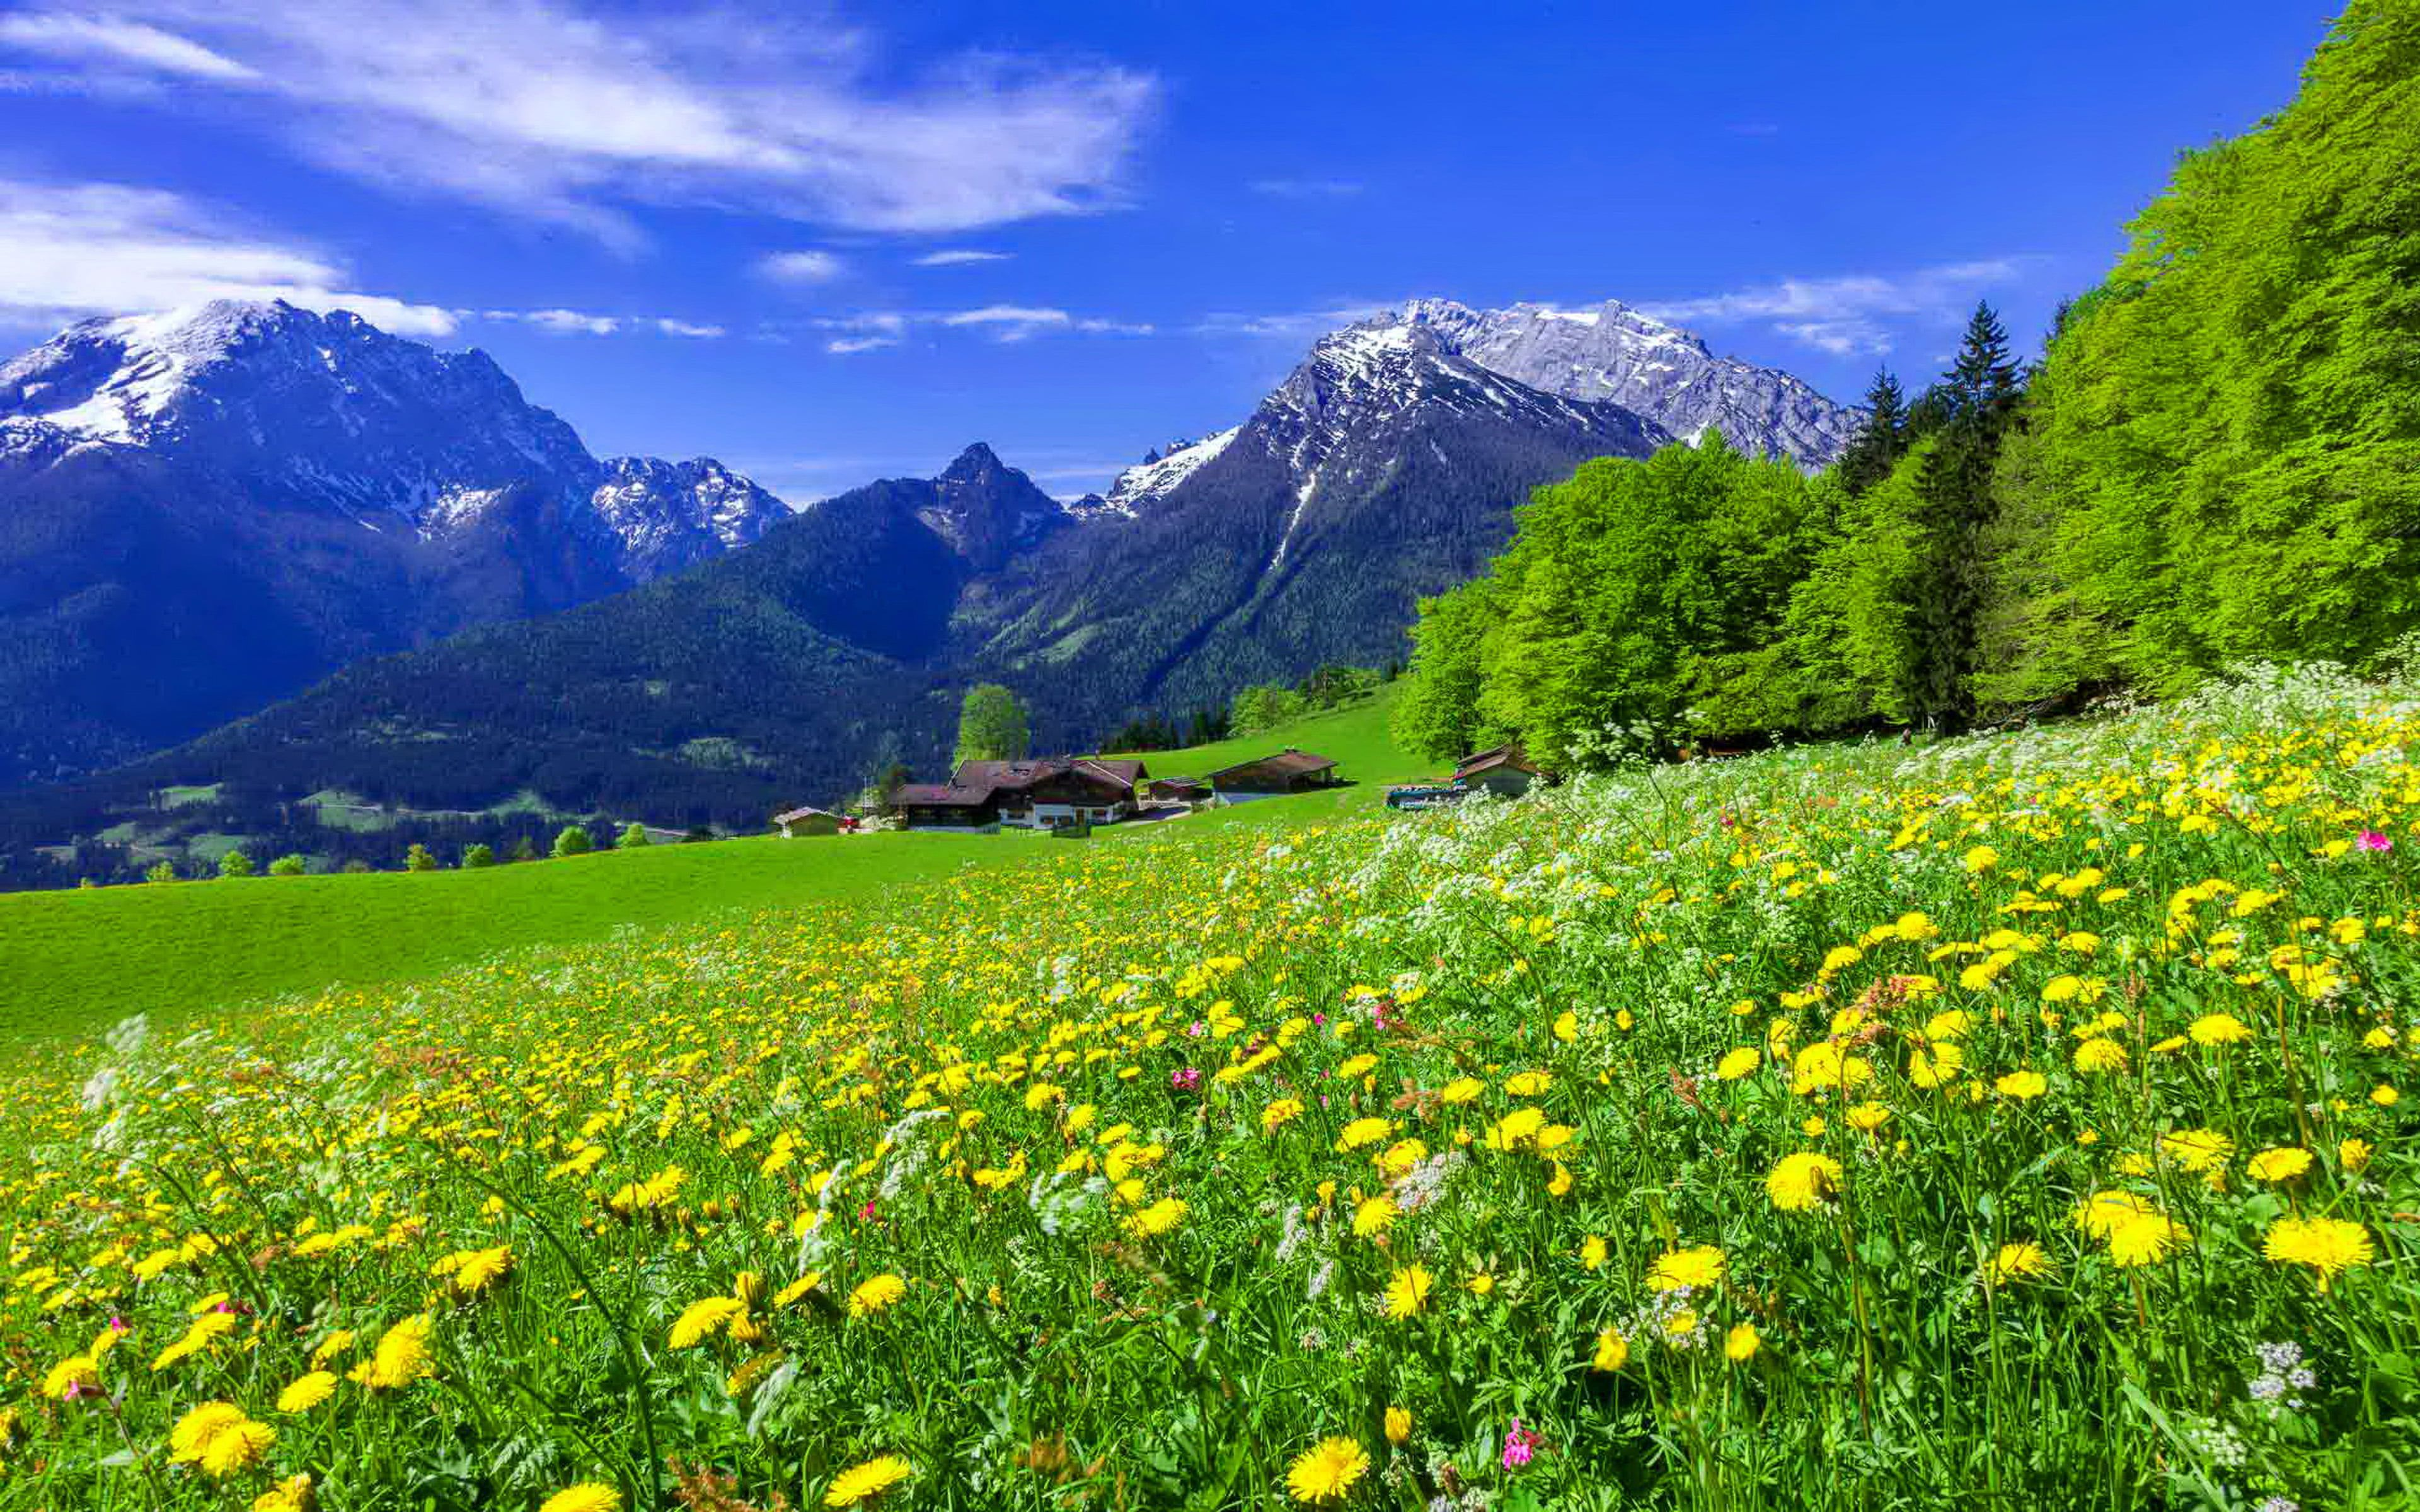 Mountain Meadow Landscape With Beautiful Mountain Flowers Yellow And White Flowers An Desktop Wallpapers Backgrounds Wallpaper Nature Flowers Pretty Landscapes